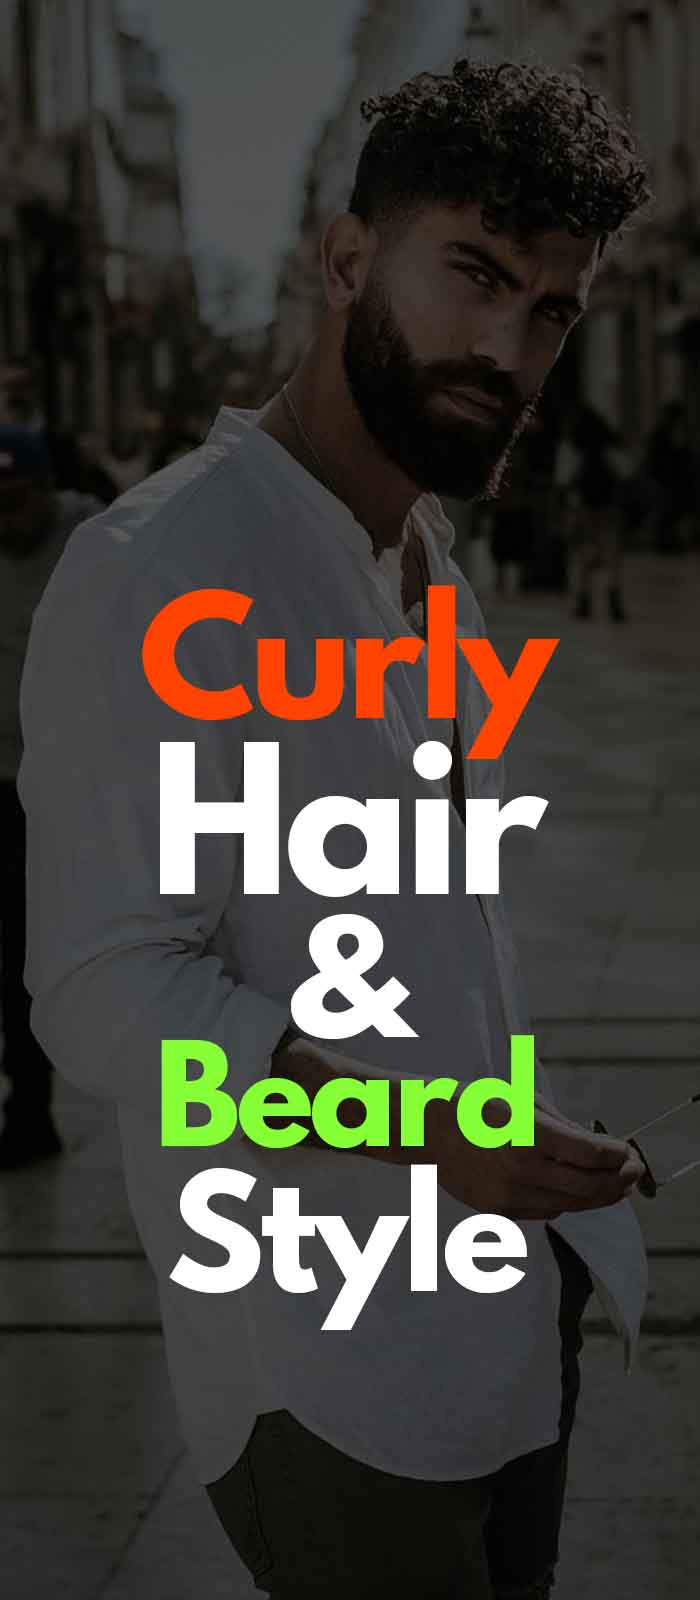 Messy Curly Hair With Thick Beard ideas for men!